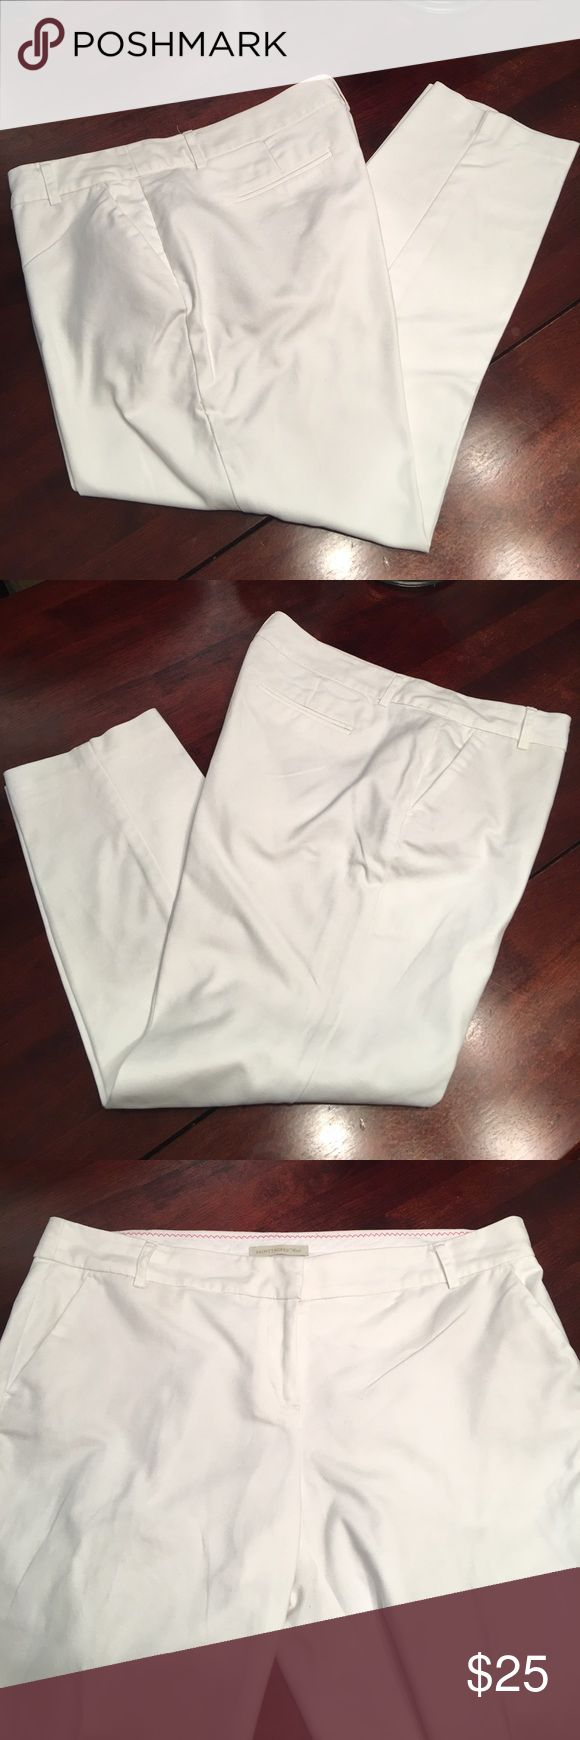 """🆕Saint Tropez West White ankle pants Saint Tropez West White ankle pants. Great for summer office wear or casual wear! They have some stretch to them. Zipper - hook & slide closure - belt loops at waist - front slip pockets & faux rear pockets. There are two small dots on back from where they were hung dry- see pic. Waist laying flat 18.5"""" inseam 26"""".  Besides the two small spots EUC ✅I ship same or next day ✅Bundle for discount Saint Tropez West Pants Ankle & Cropped"""